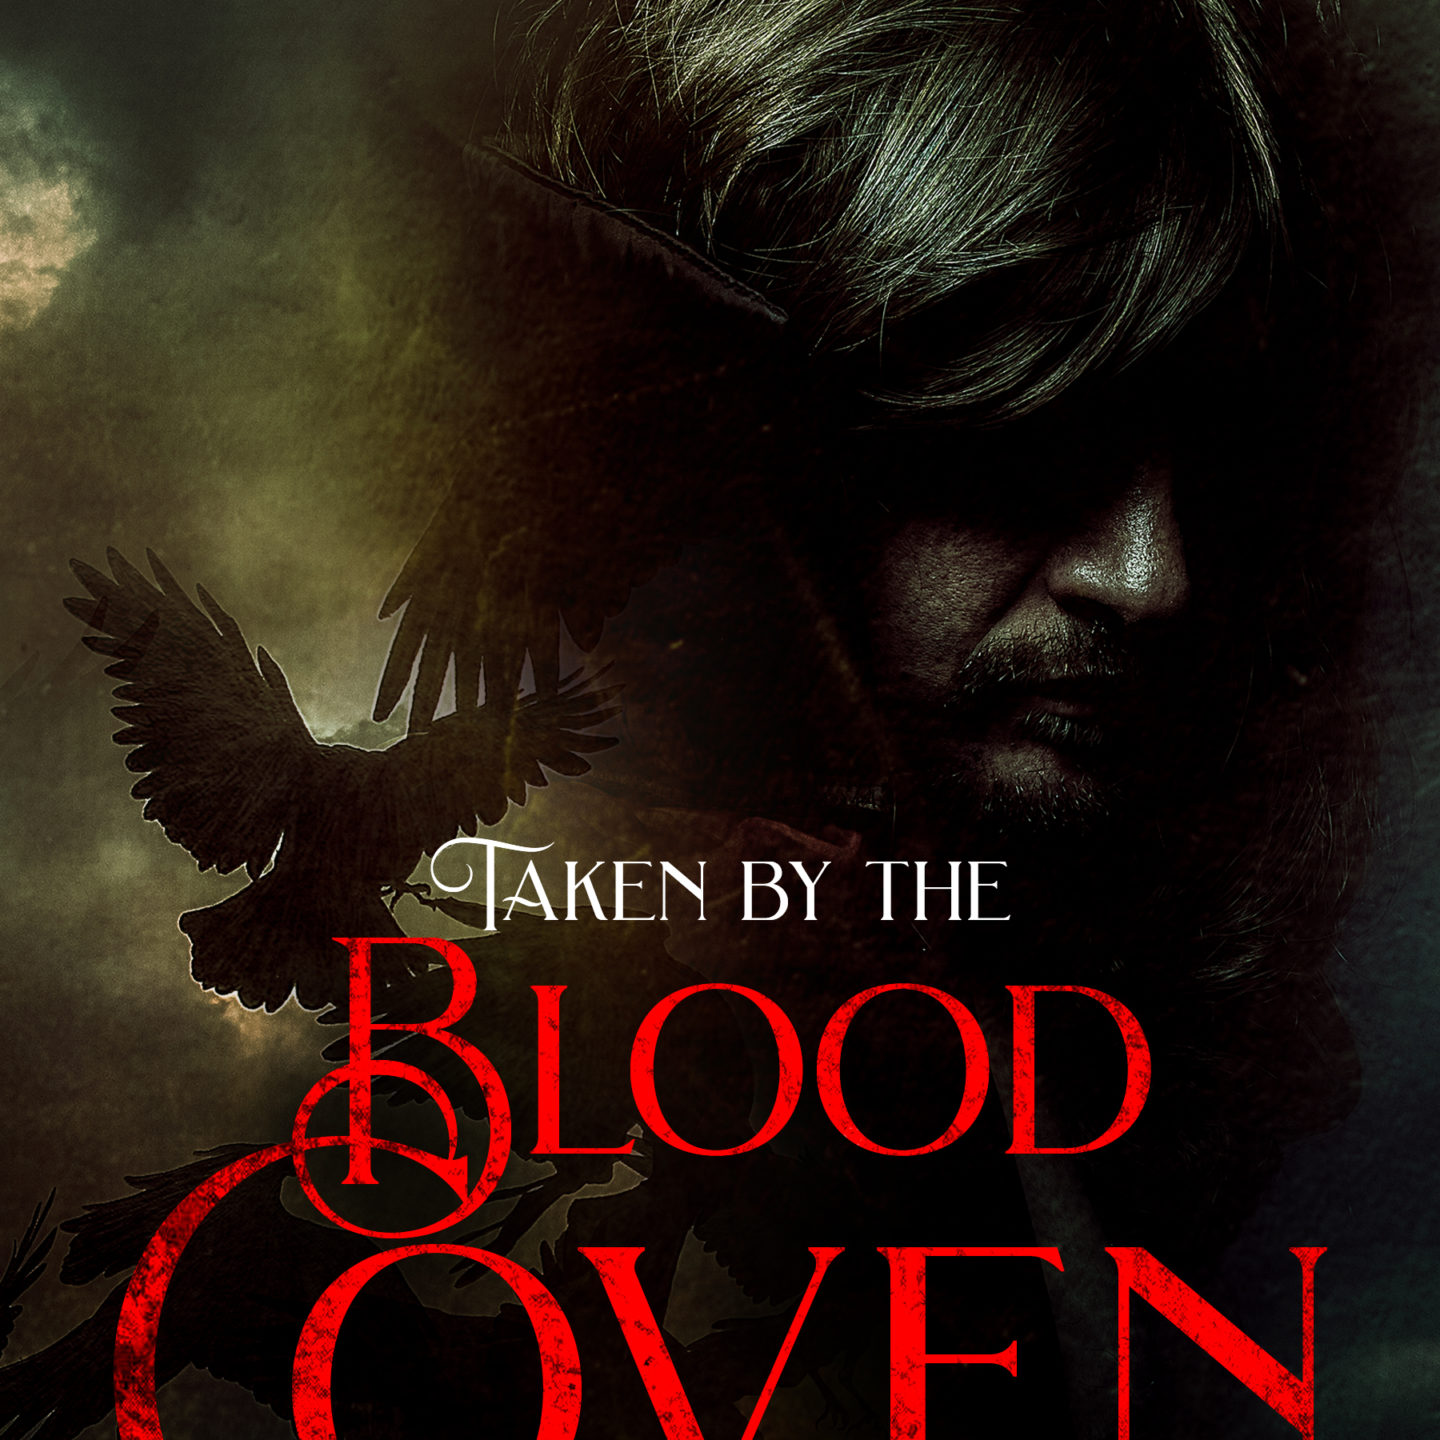 Taken by the Blood Coven